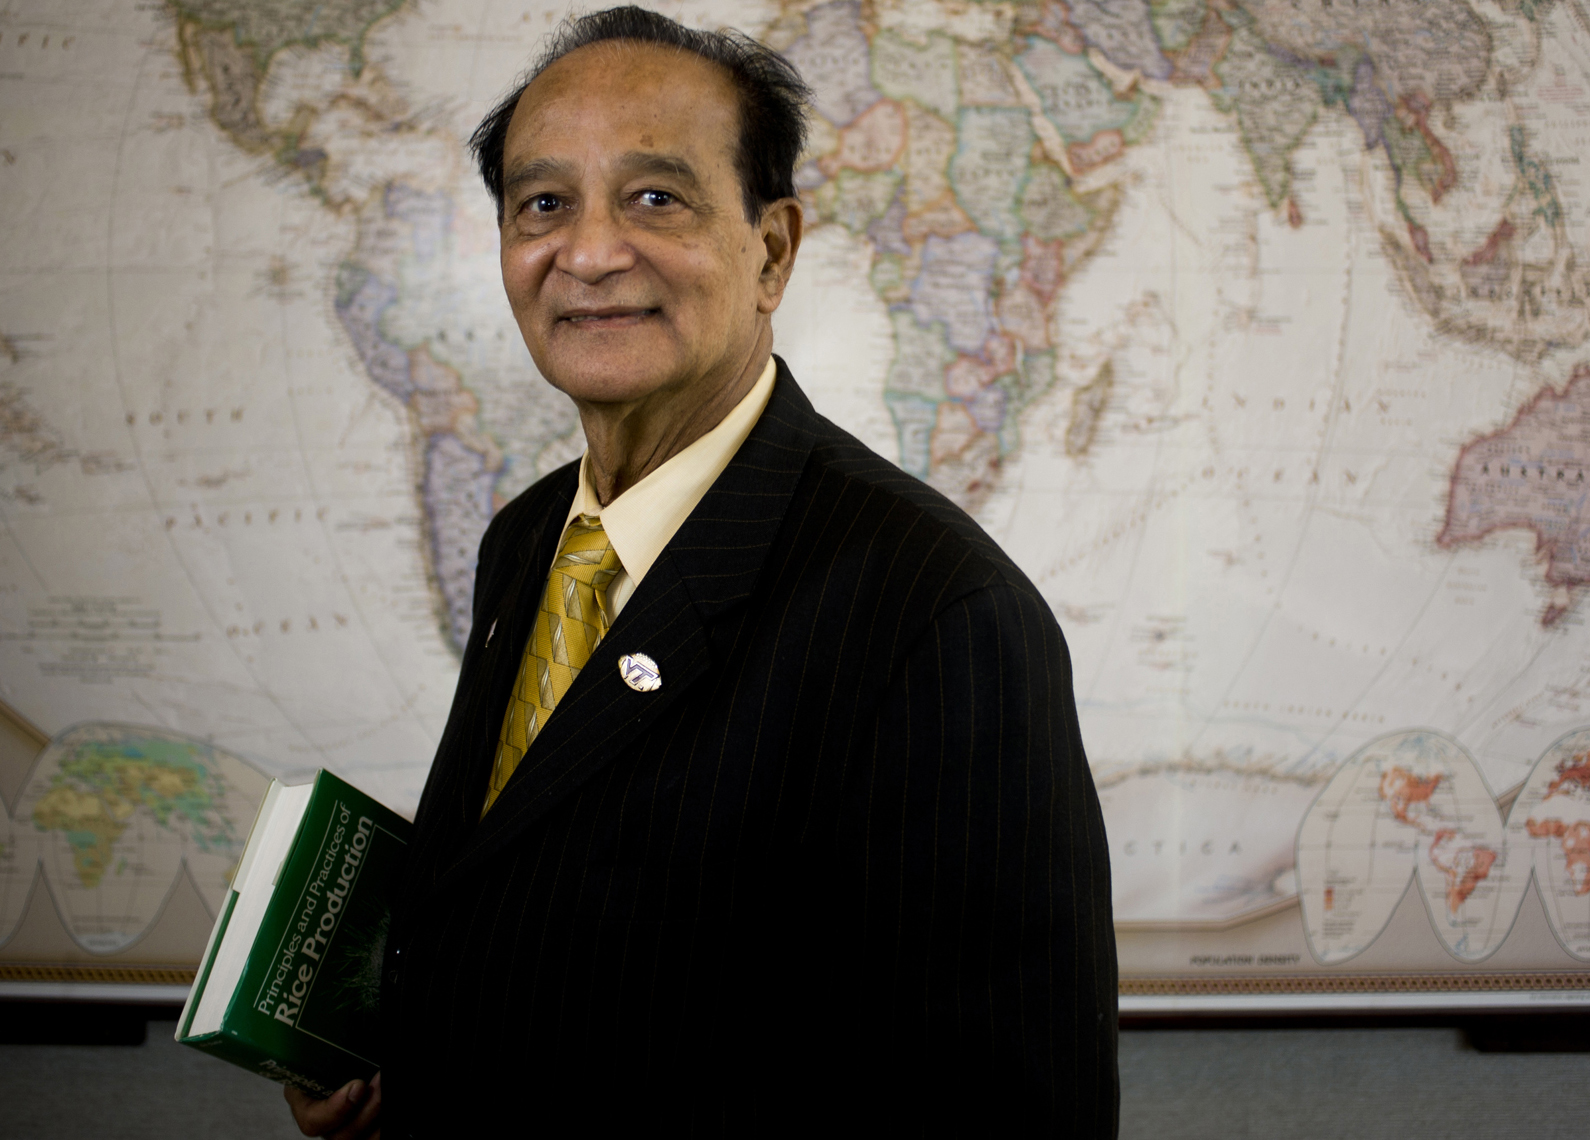 S.K. De Datta standing in front of world map